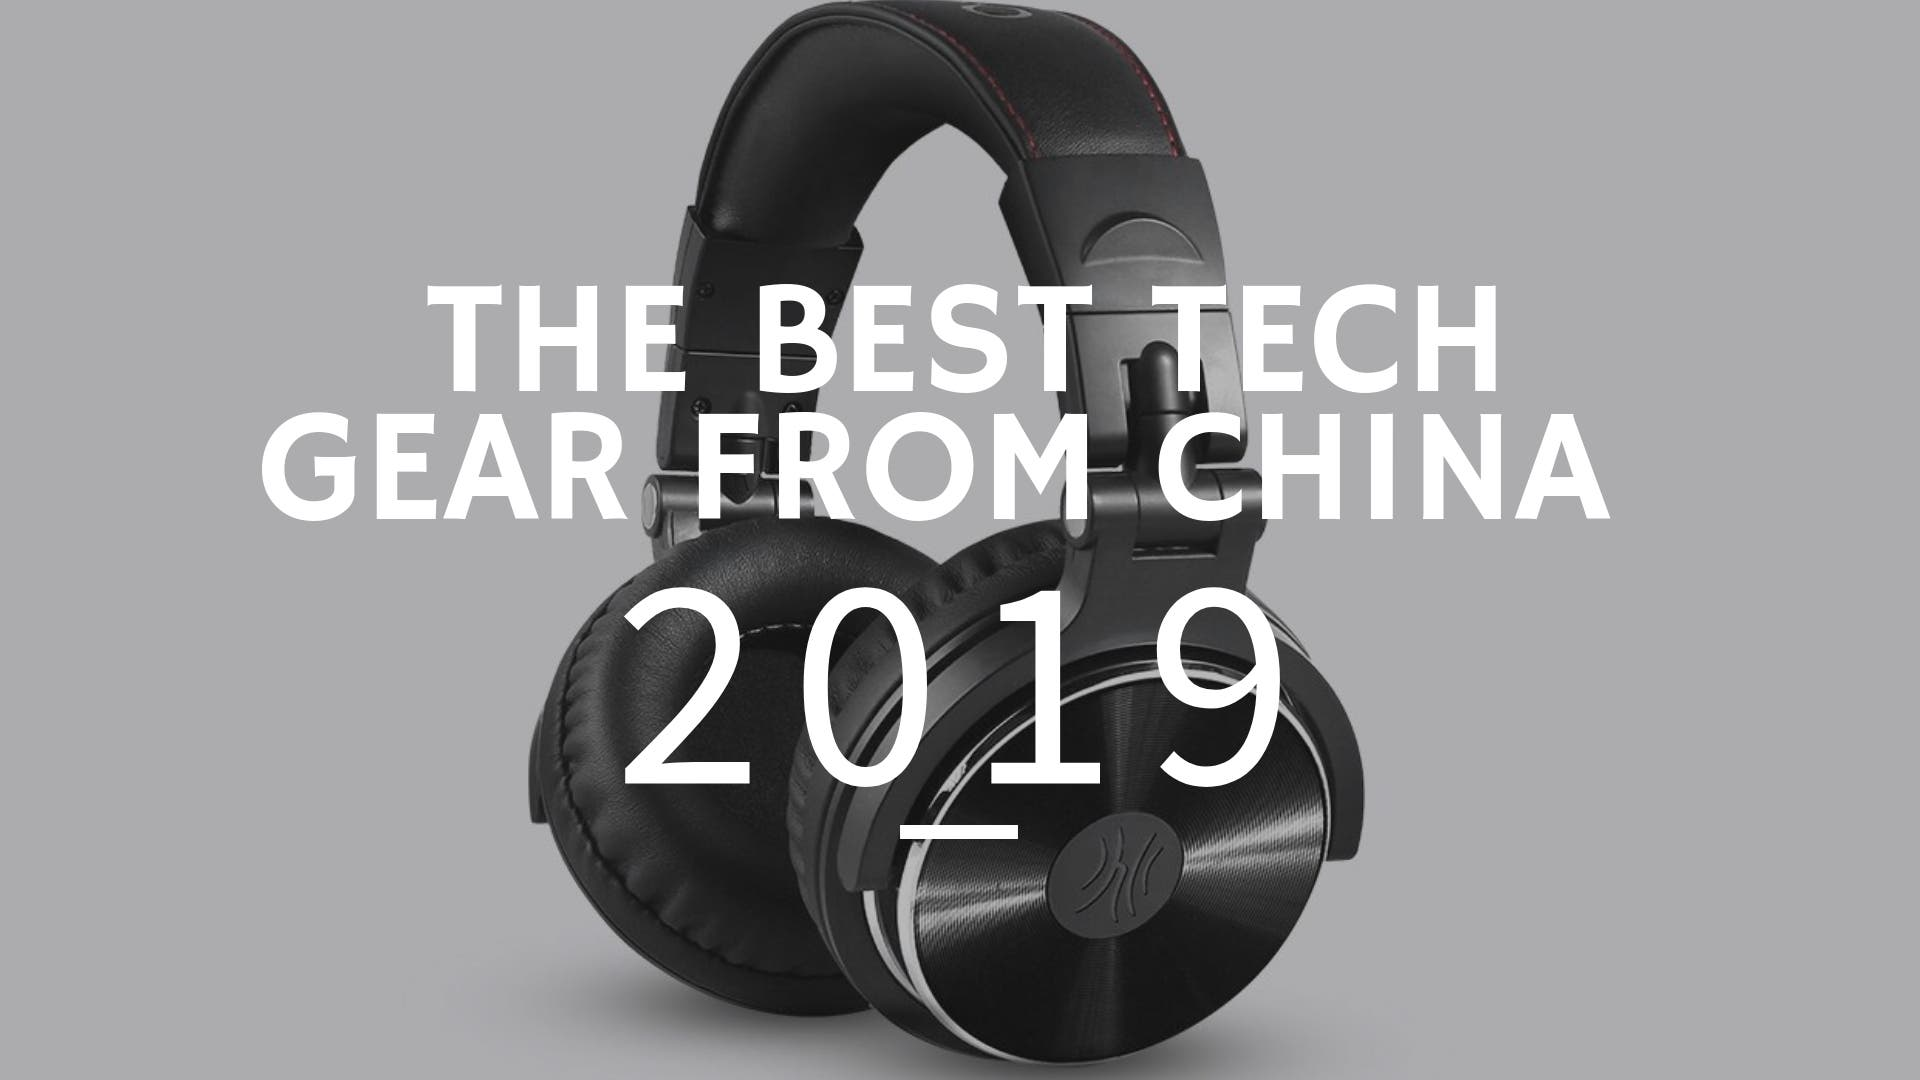 The Best Tech Gear From China in 2019